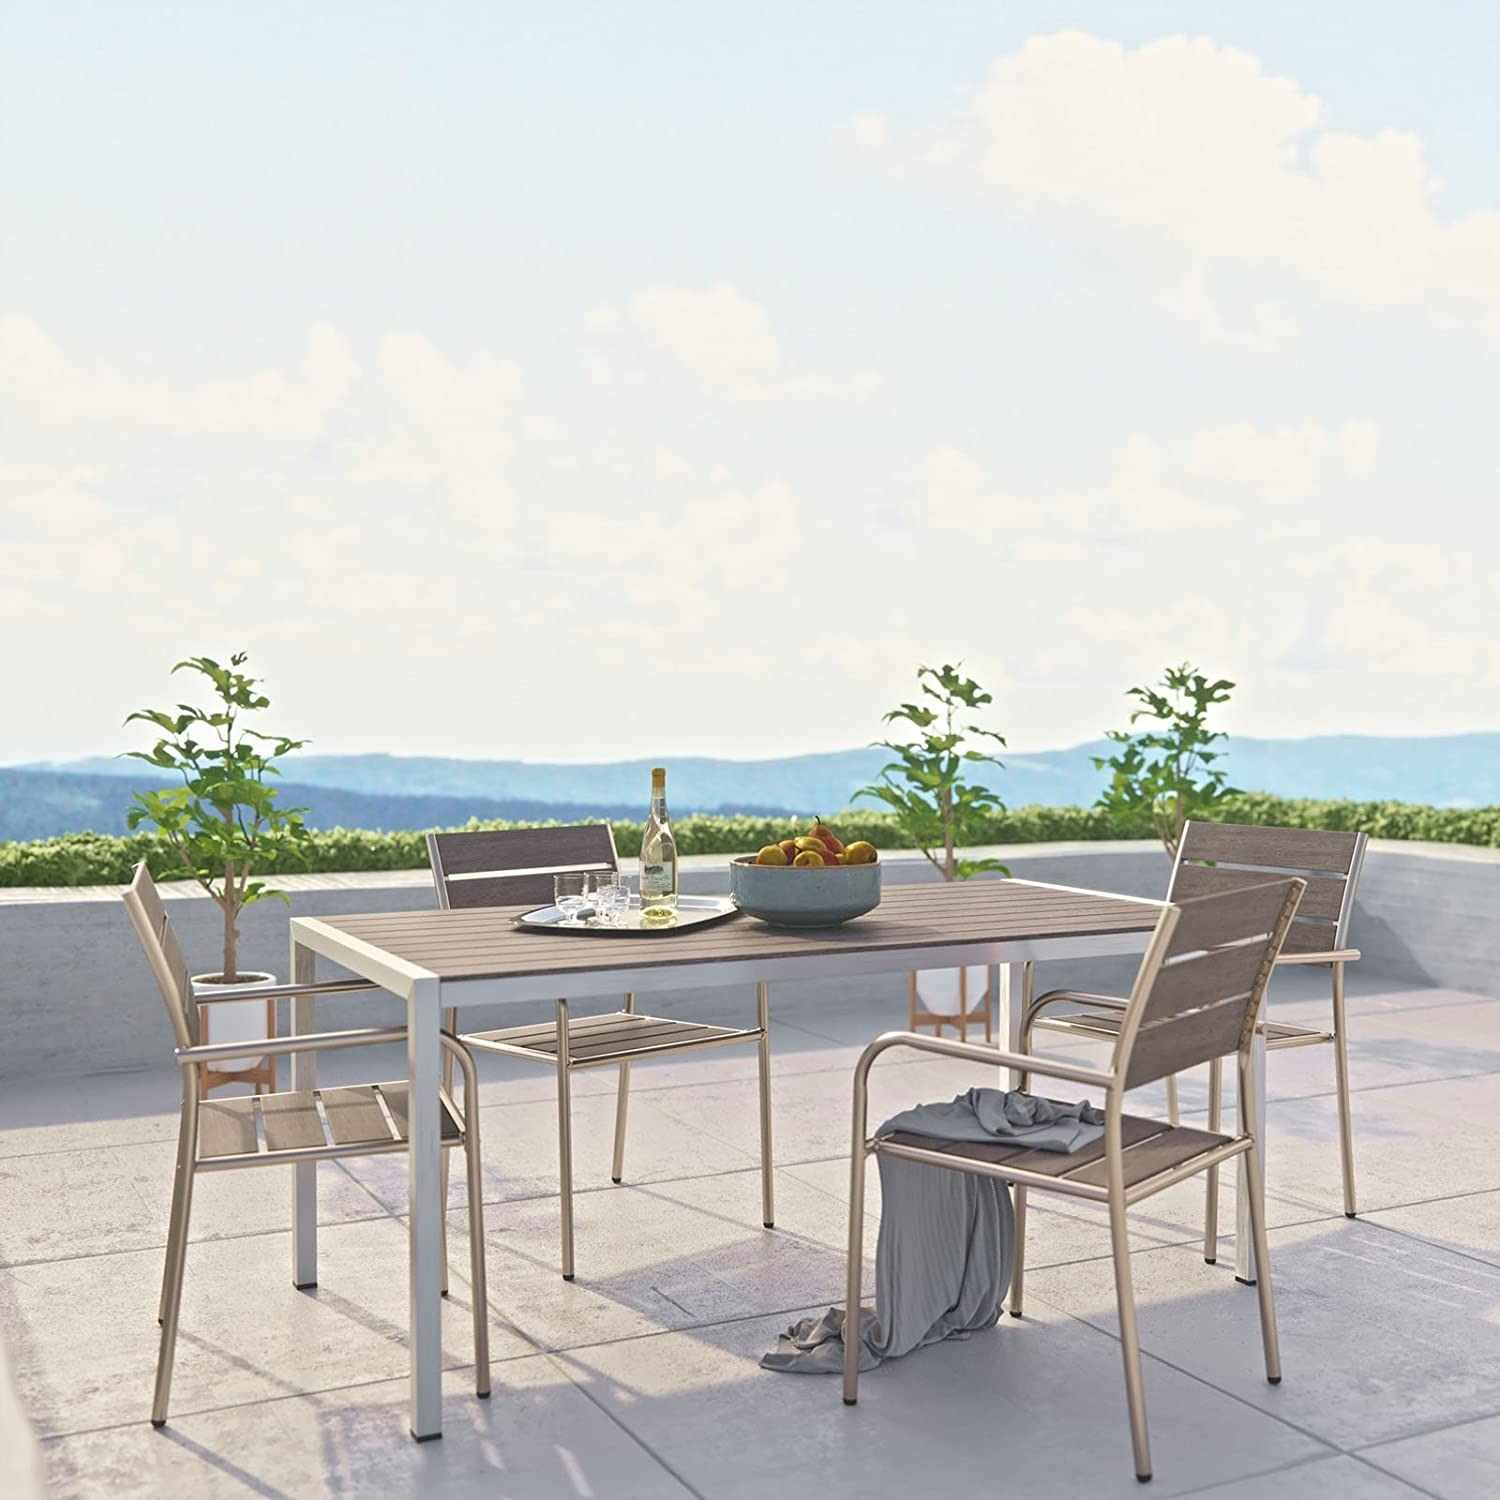 Modern 5-Piece Dining Set In Silver Gray Finish - image-6